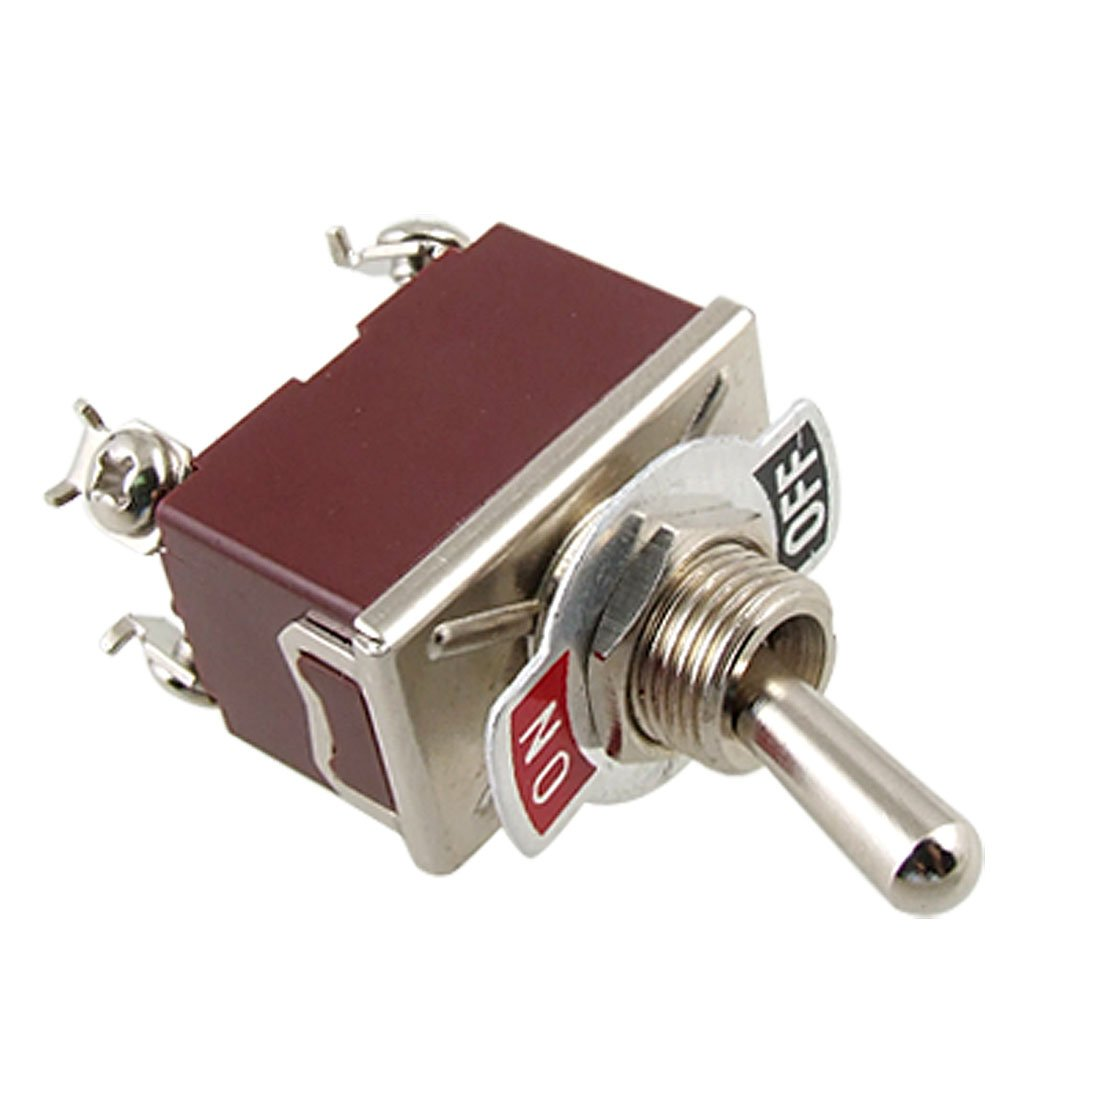 uxcell a10113000ux0239 Toggle Switch AC Handle 15 250V Ranking TOP15 Amp Large-scale sale Bat